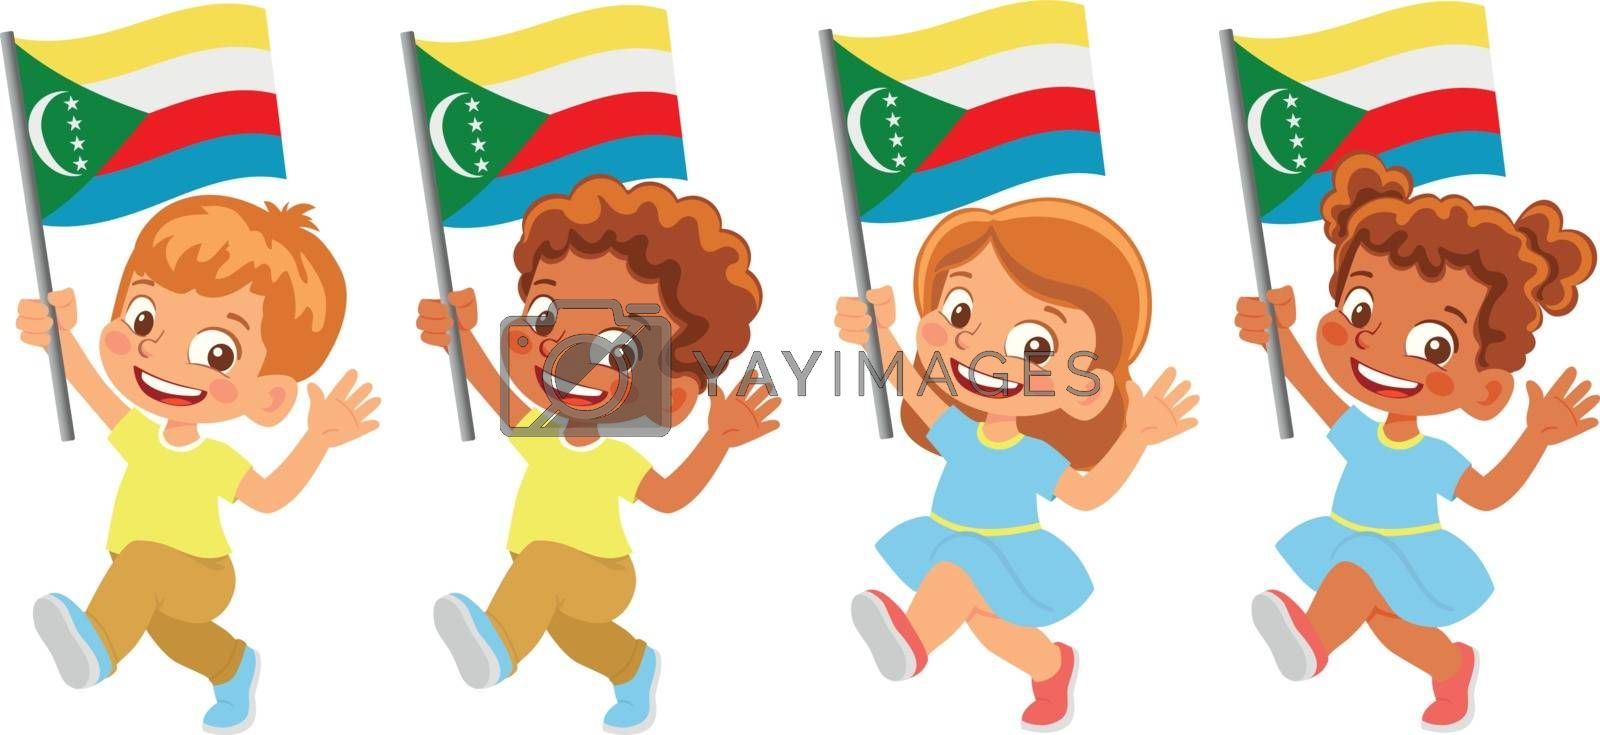 Comoros flag in hand. Children holding flag. National flag of Comoros vector